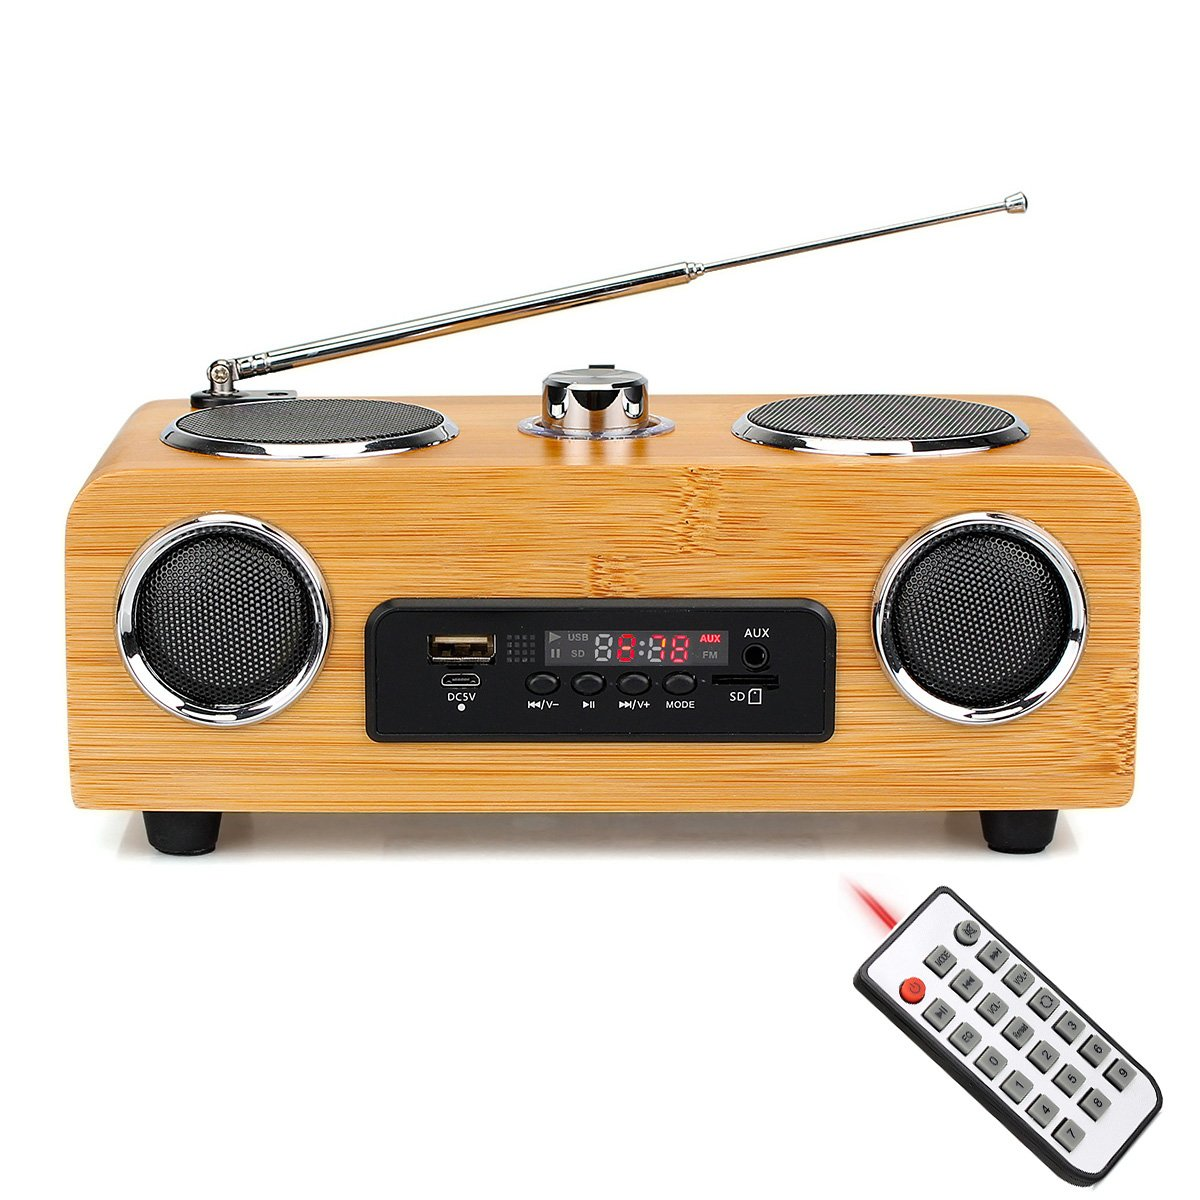 TIVDIO Portable FM Stereo Transistor Radio Support Micro USB Card AUX audio input MP3 Player Speaker with Handmade Bamboo Multimedia Speaker Classical Remote Control